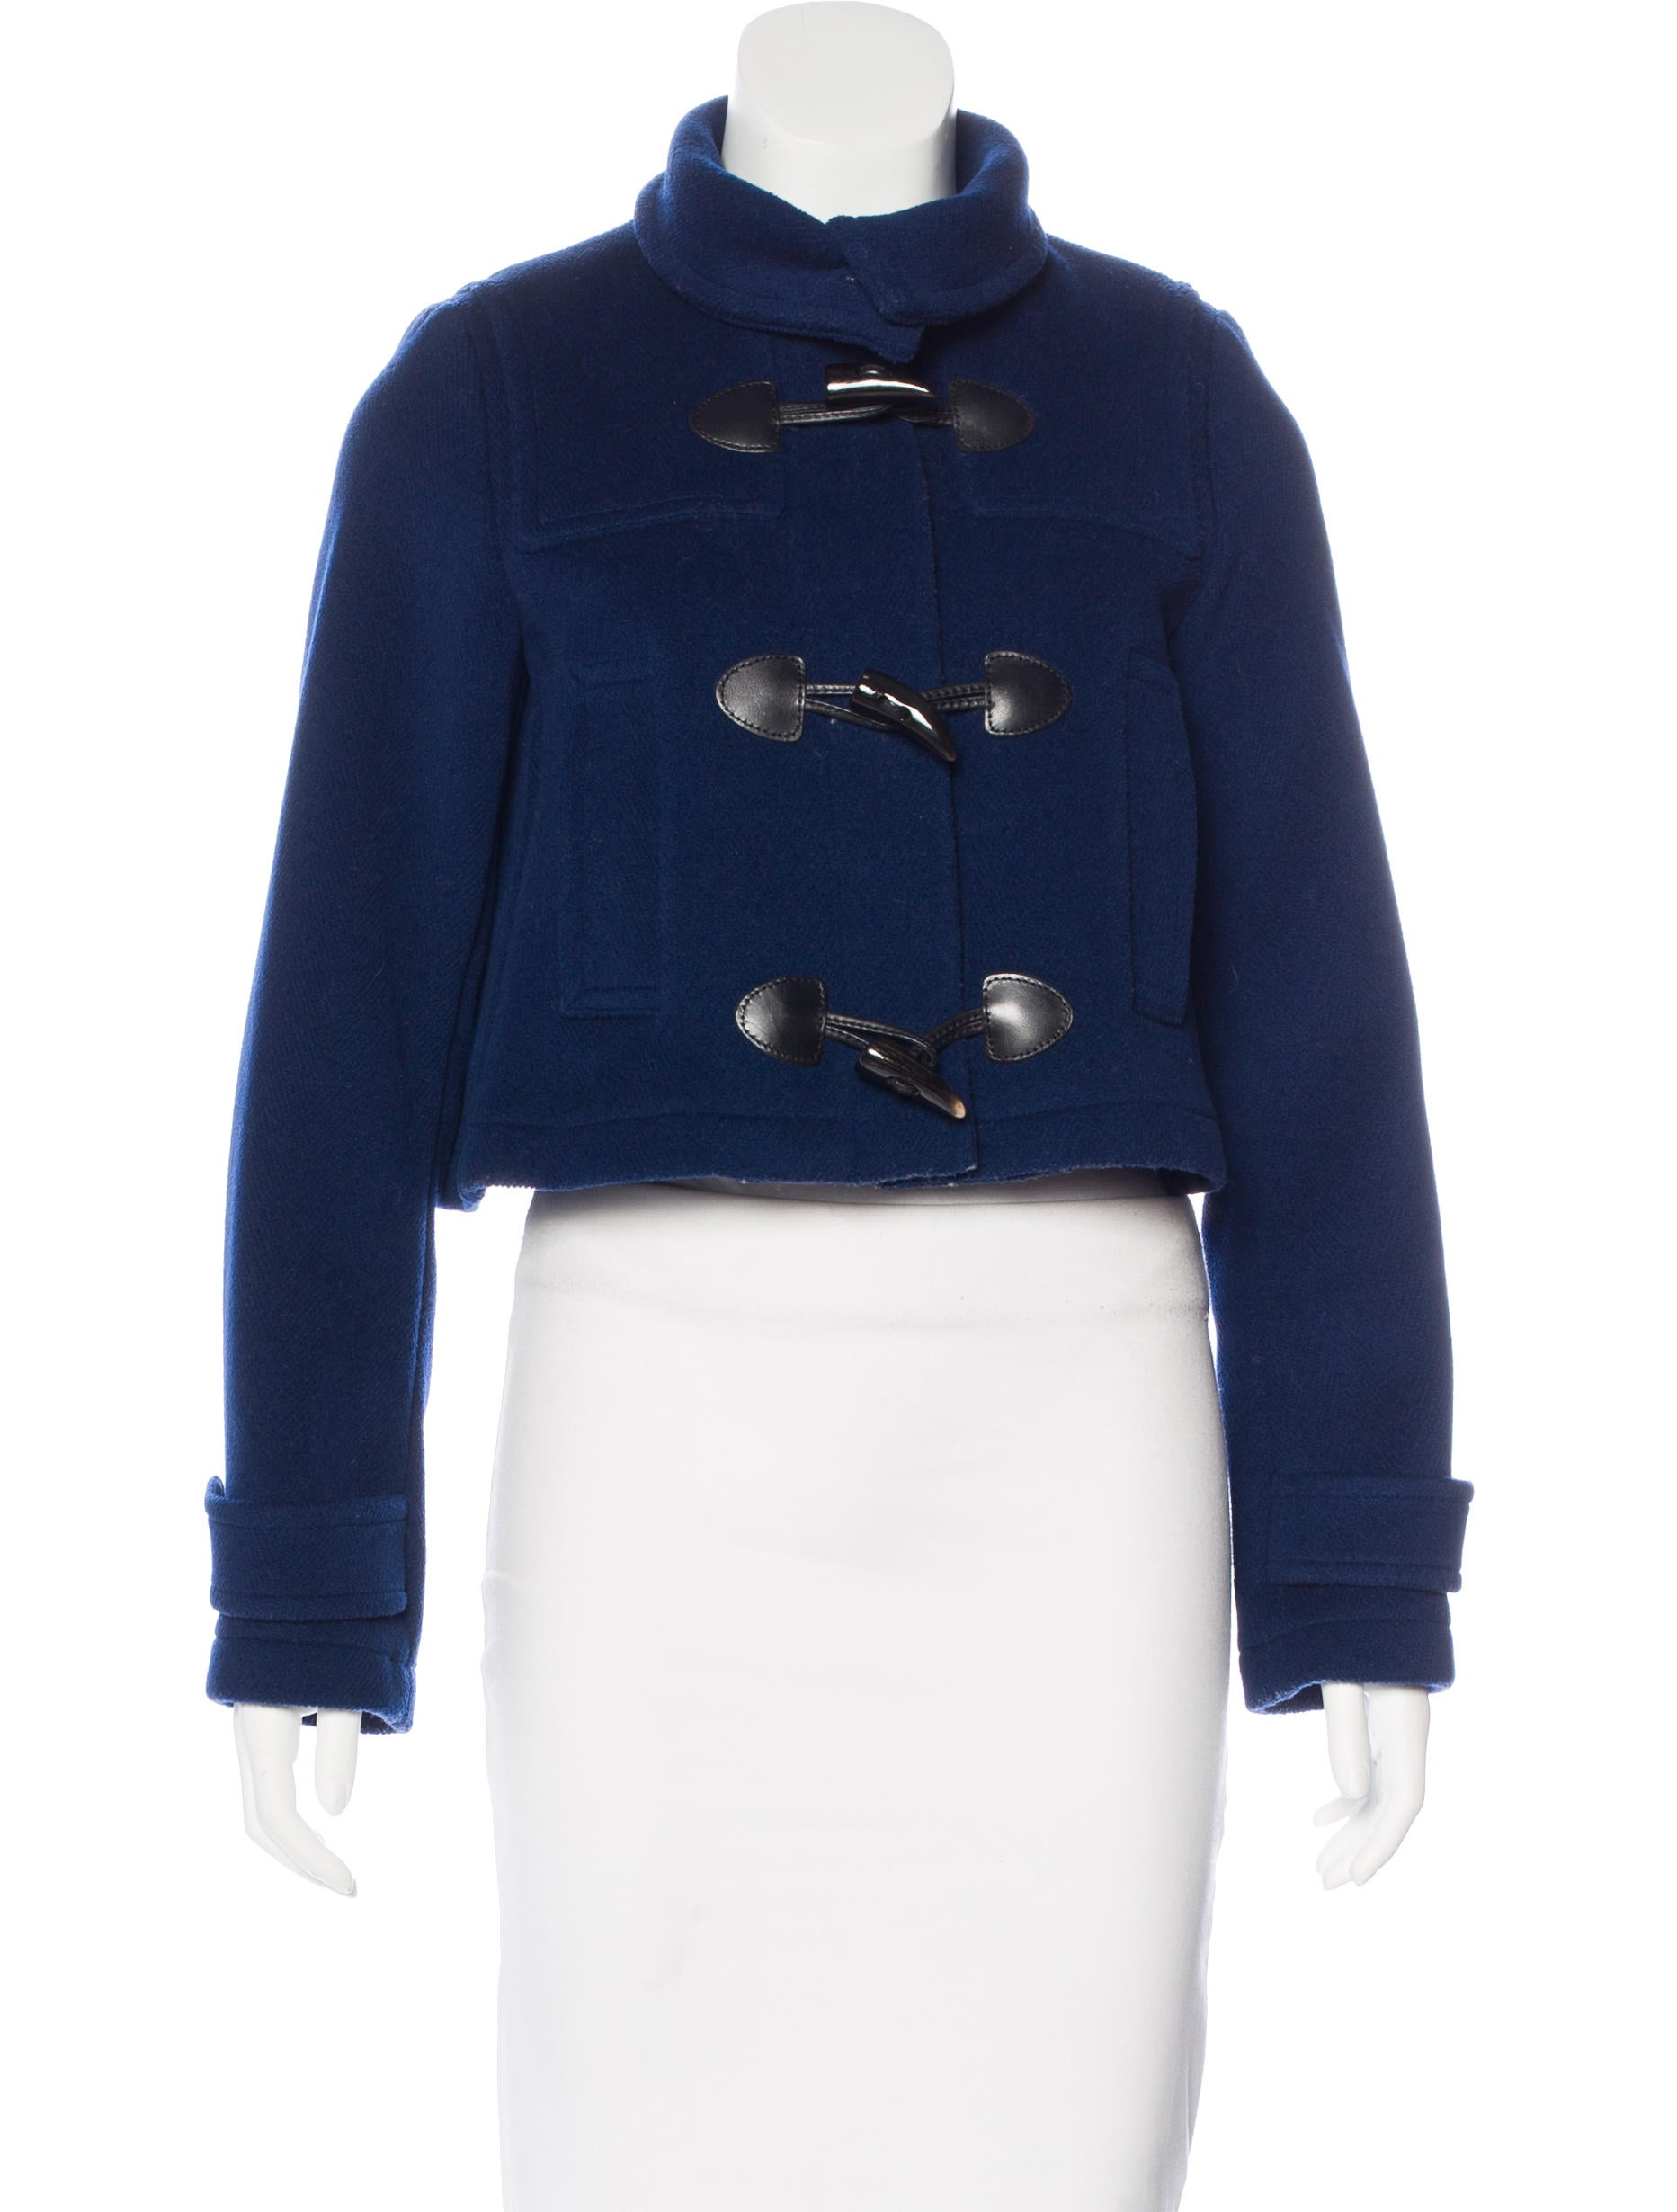 Awesome Derek Lam Pea Coat - Clothing - DER22133 | The RealReal